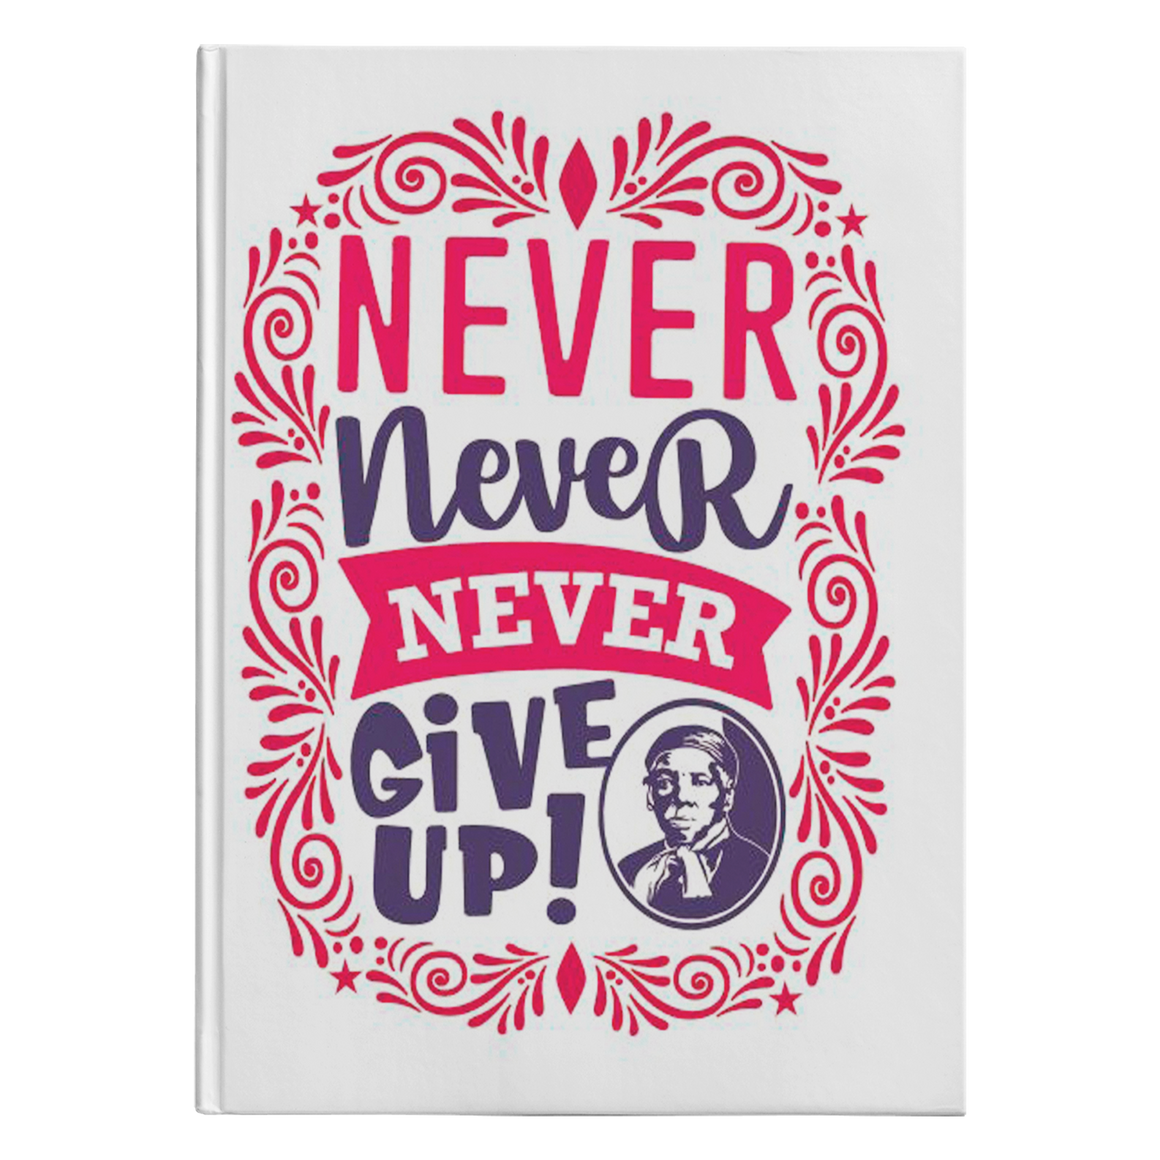 Harriet Tubman Never, Never, Never Give Up! white journal